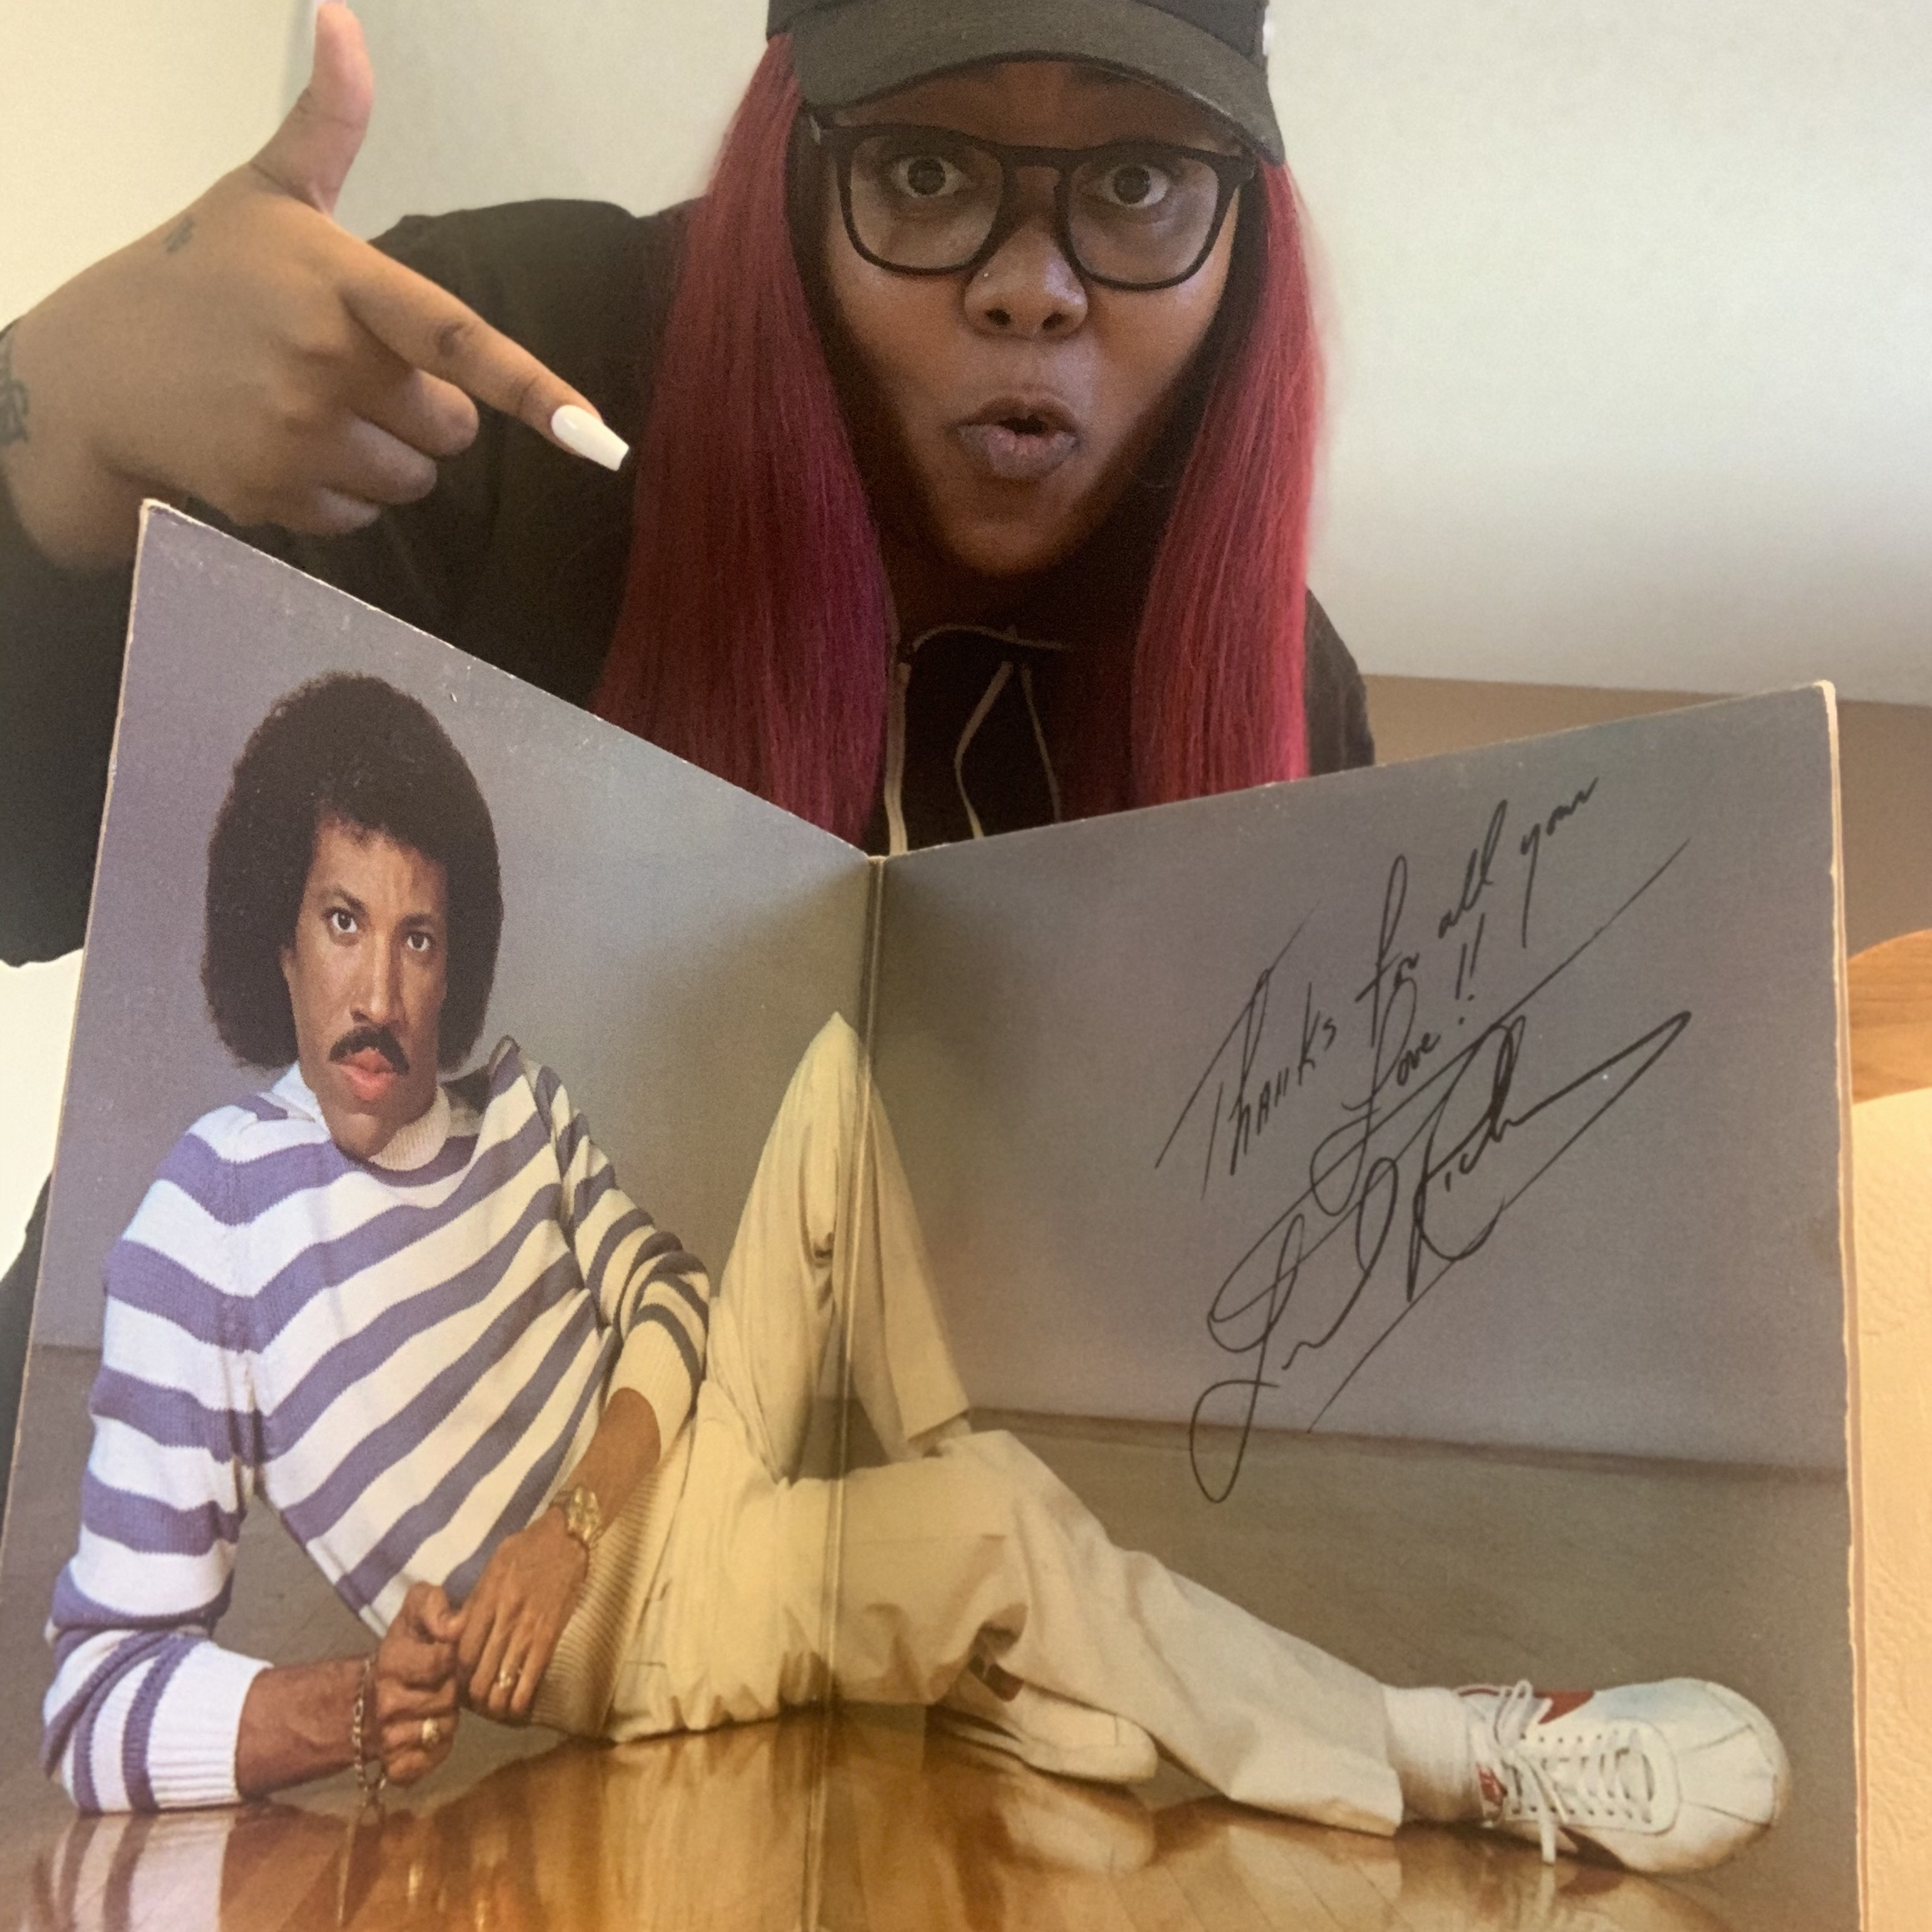 Canadian Artists Show Off Their Most Treasured Albums from Their Record Collections